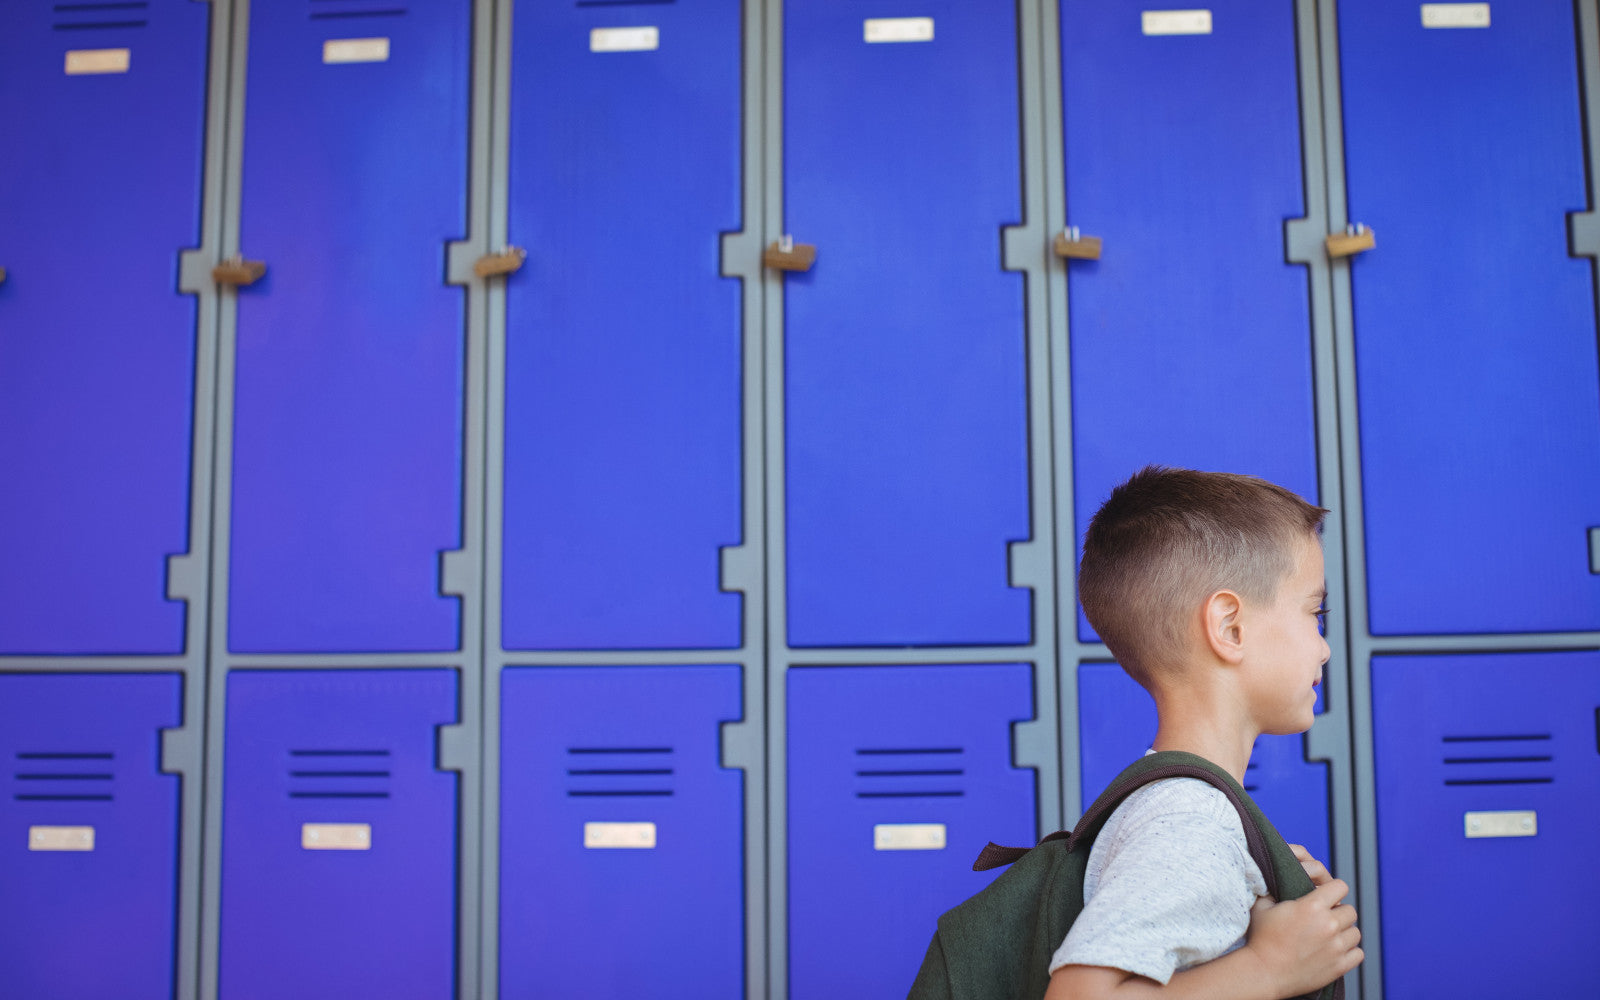 Young boy standing in front of blue plastic clothes lockers